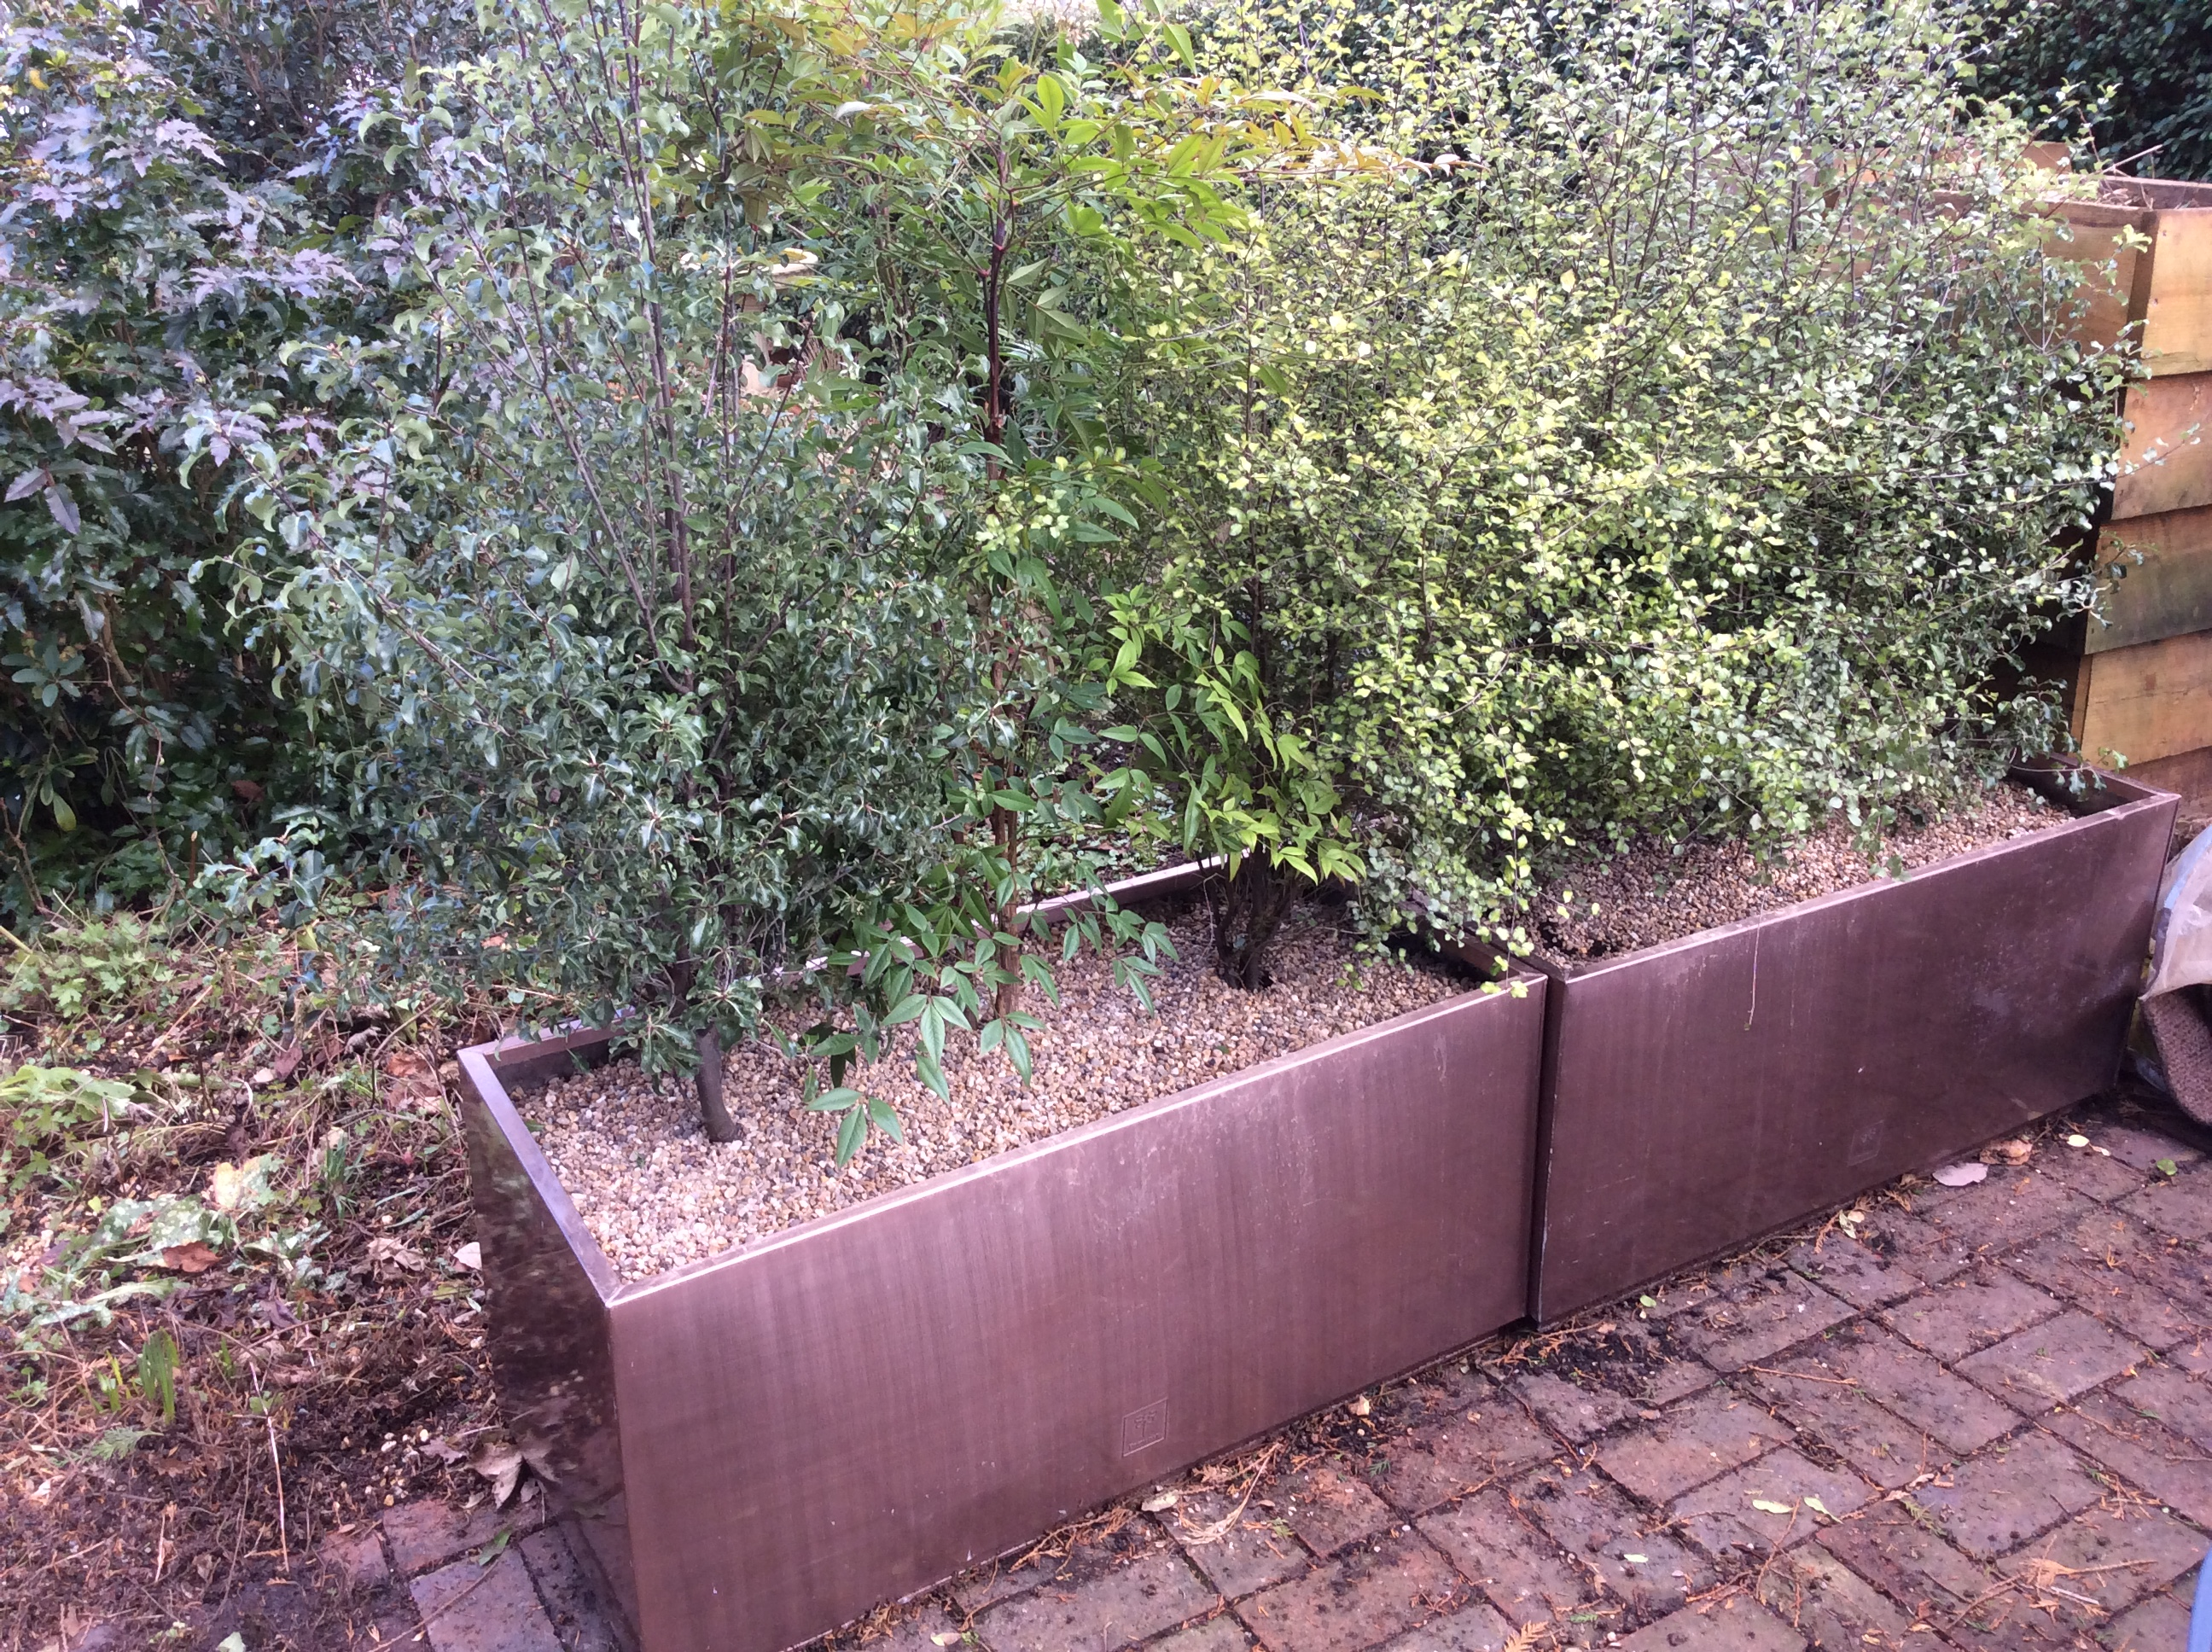 nandina and pittosporum shrubs in copper troughs